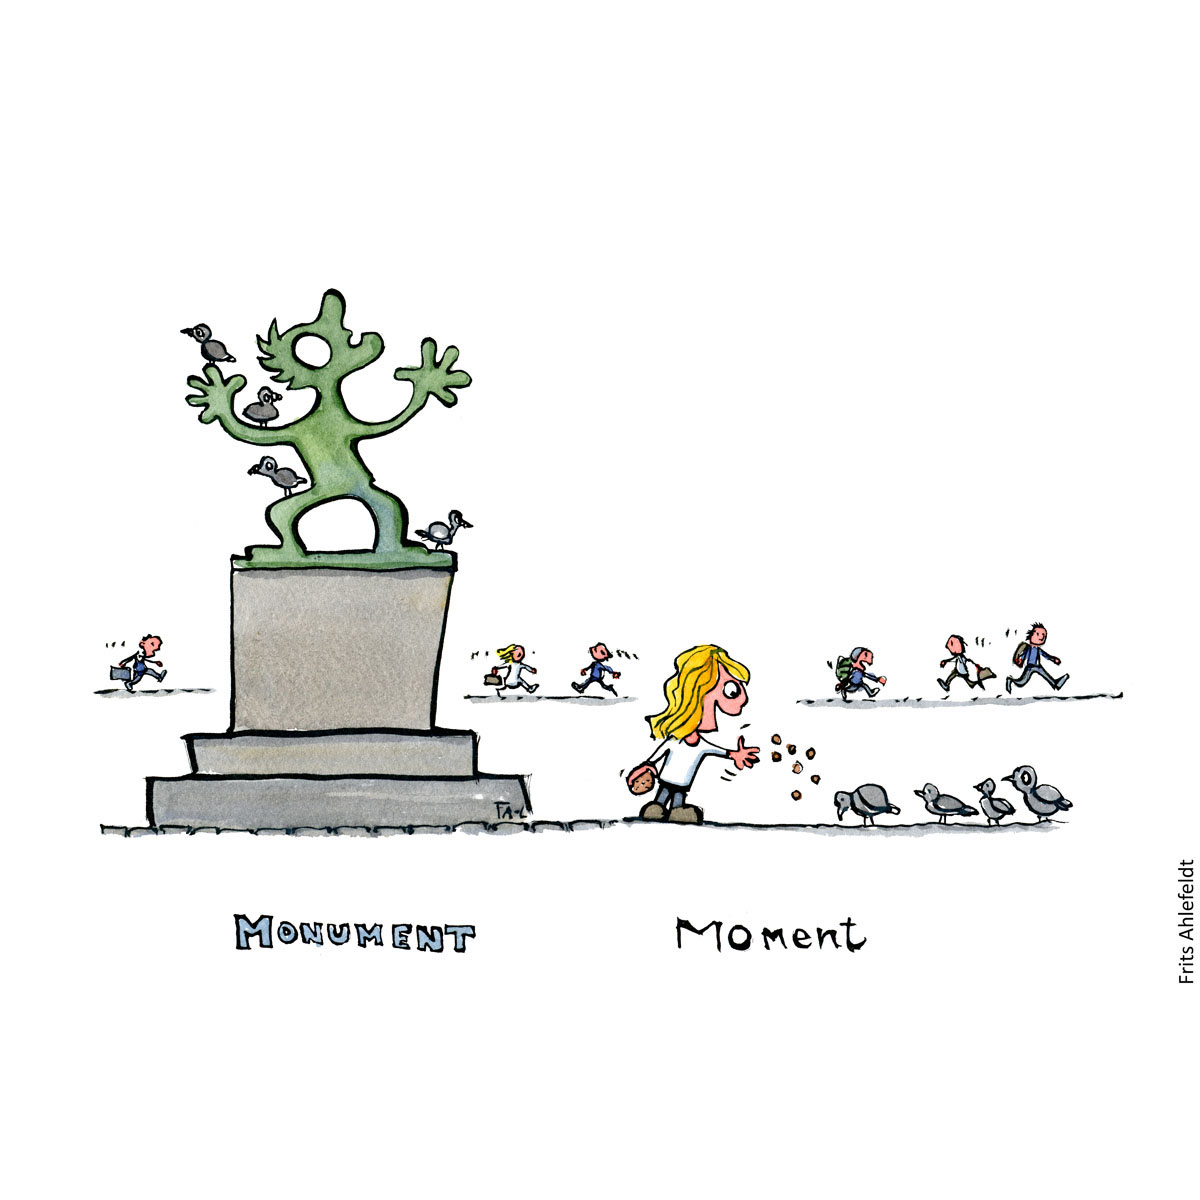 """Drawing of a statue with text monument. Next to a little girl feeding pigeons with text """"Moment"""" hurried people in the background. Psychology illustration by Frits Ahlefeldt"""